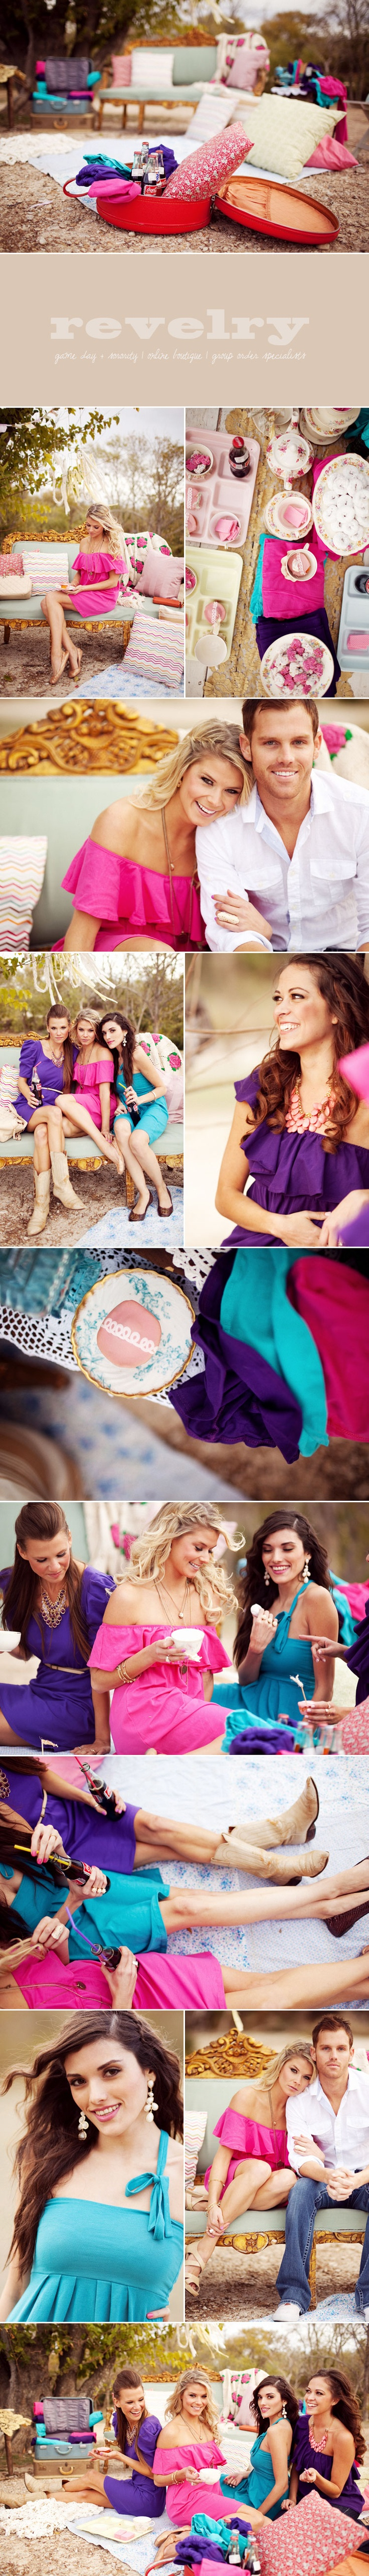 love this styled session from eephotography! so pretty!